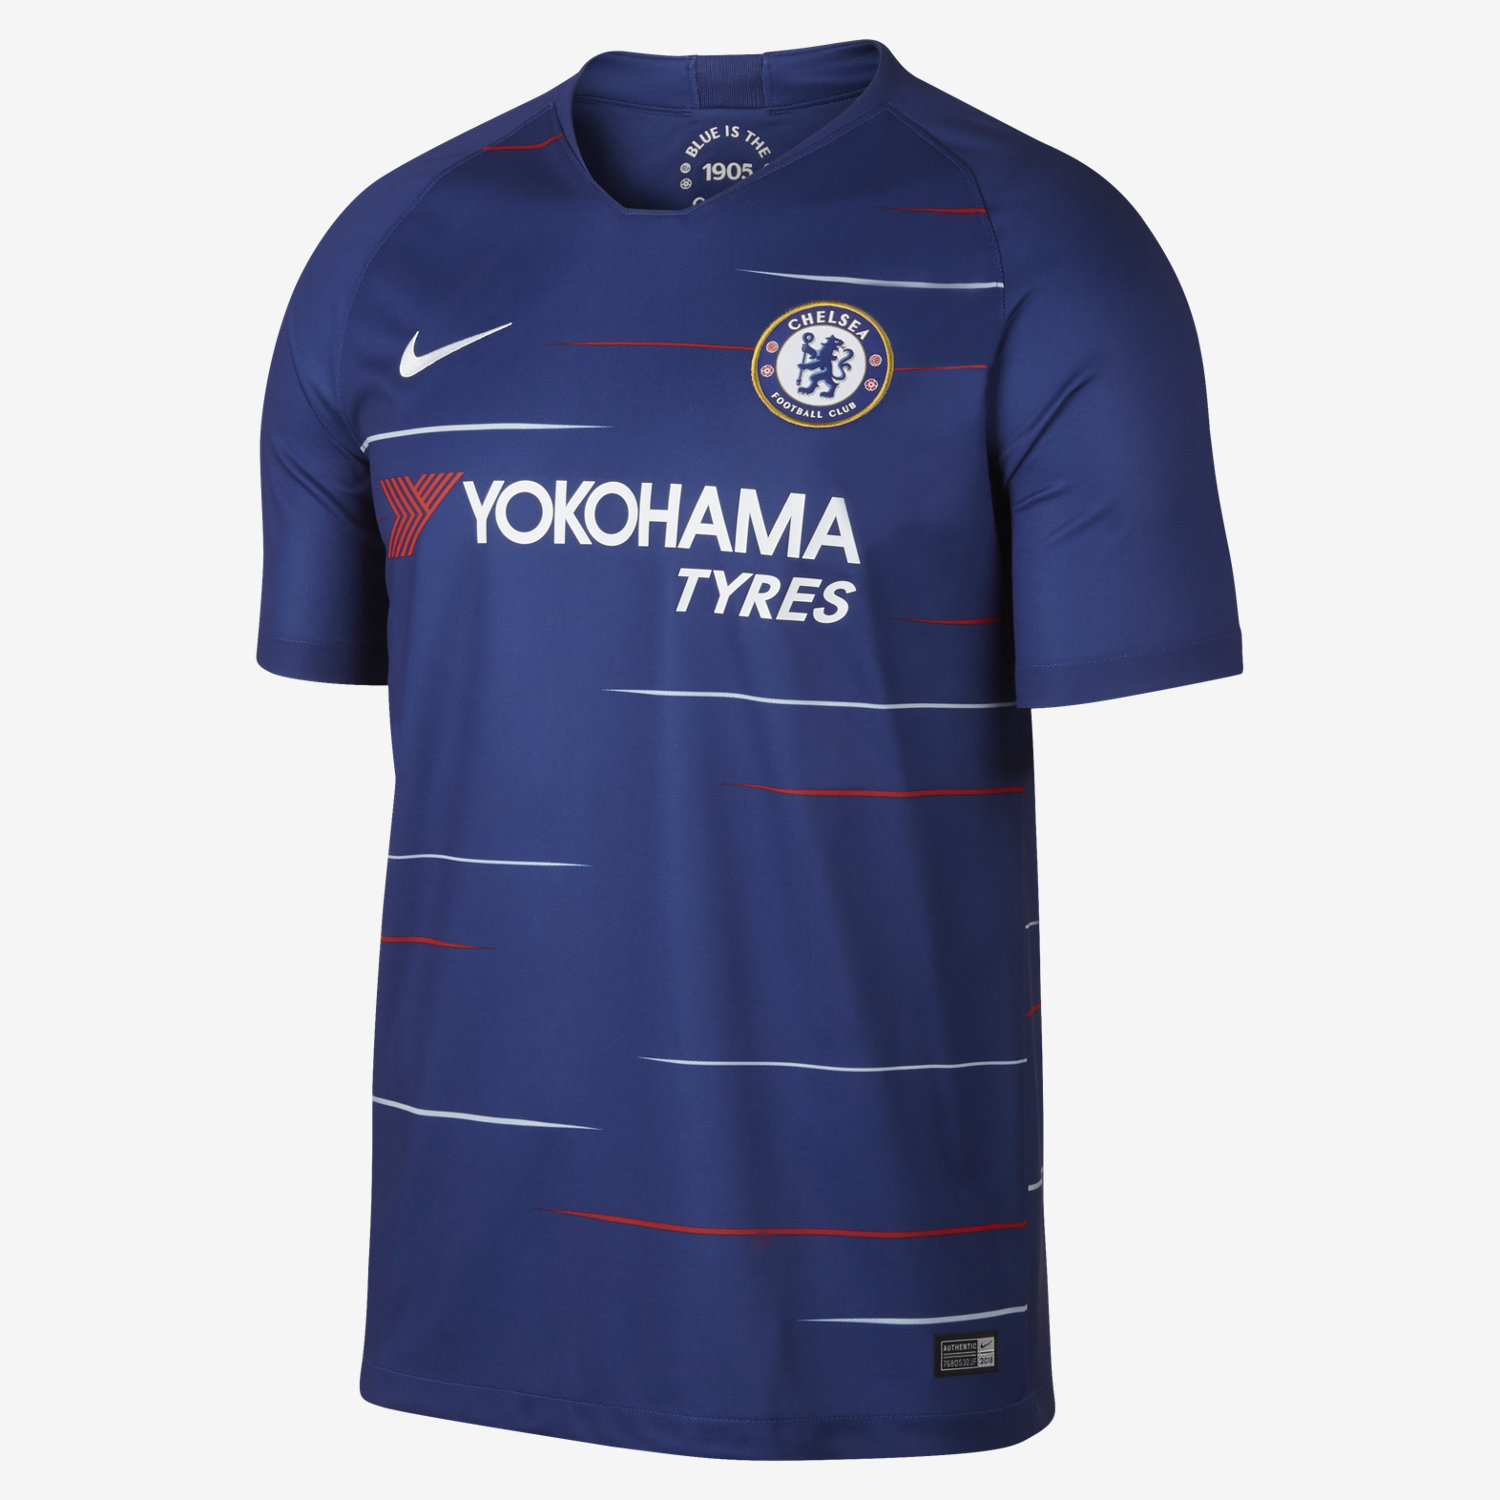 99c2626c7 2018/19 Chelsea FC Stadium Home Men's Football Shirt. Nike.com UK